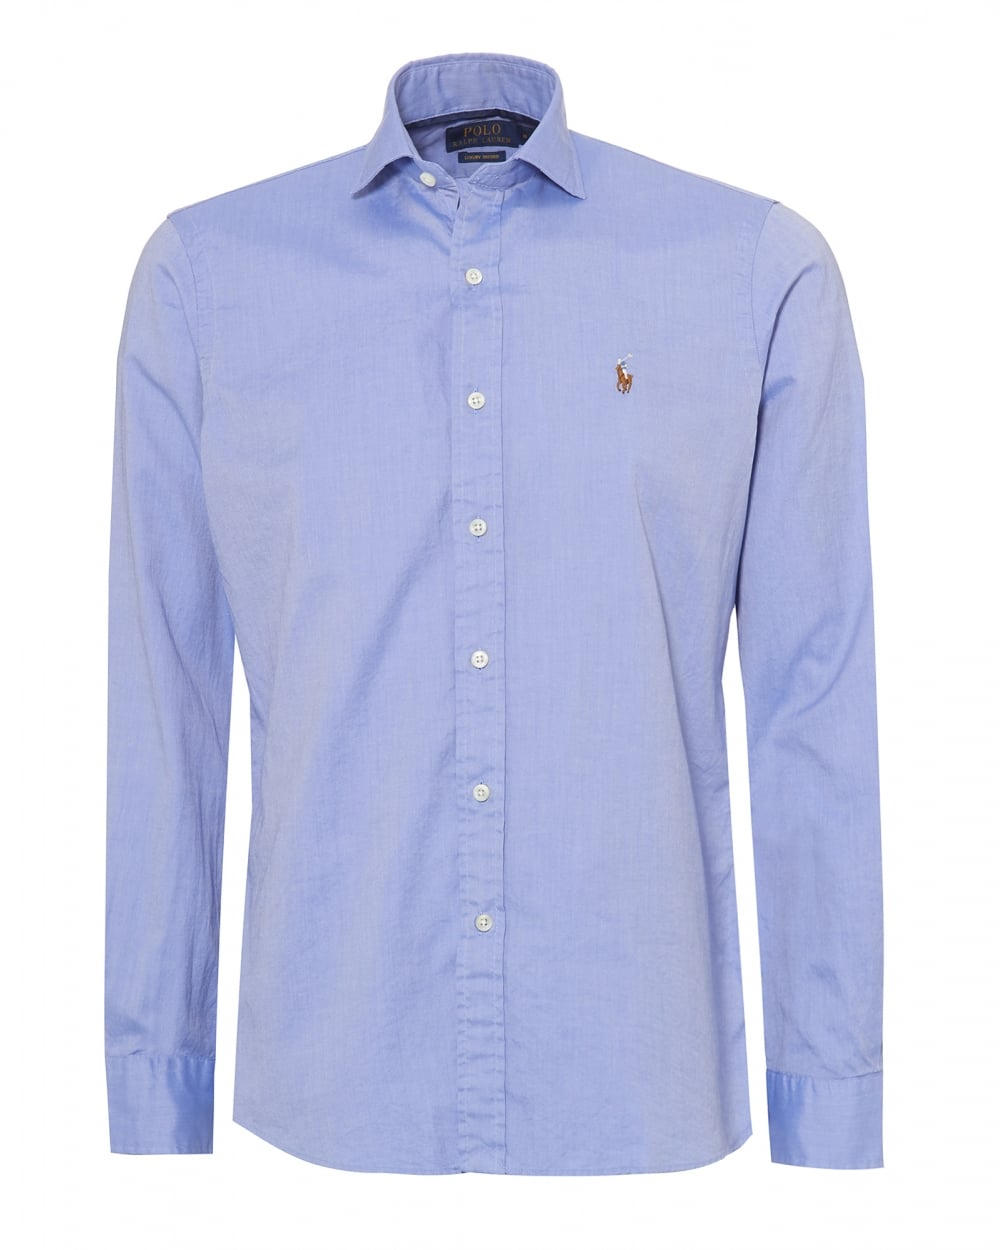 ba3fba1d57e7 Ralph Lauren Mens Luxury Oxford Slim Fit Blue Shirt